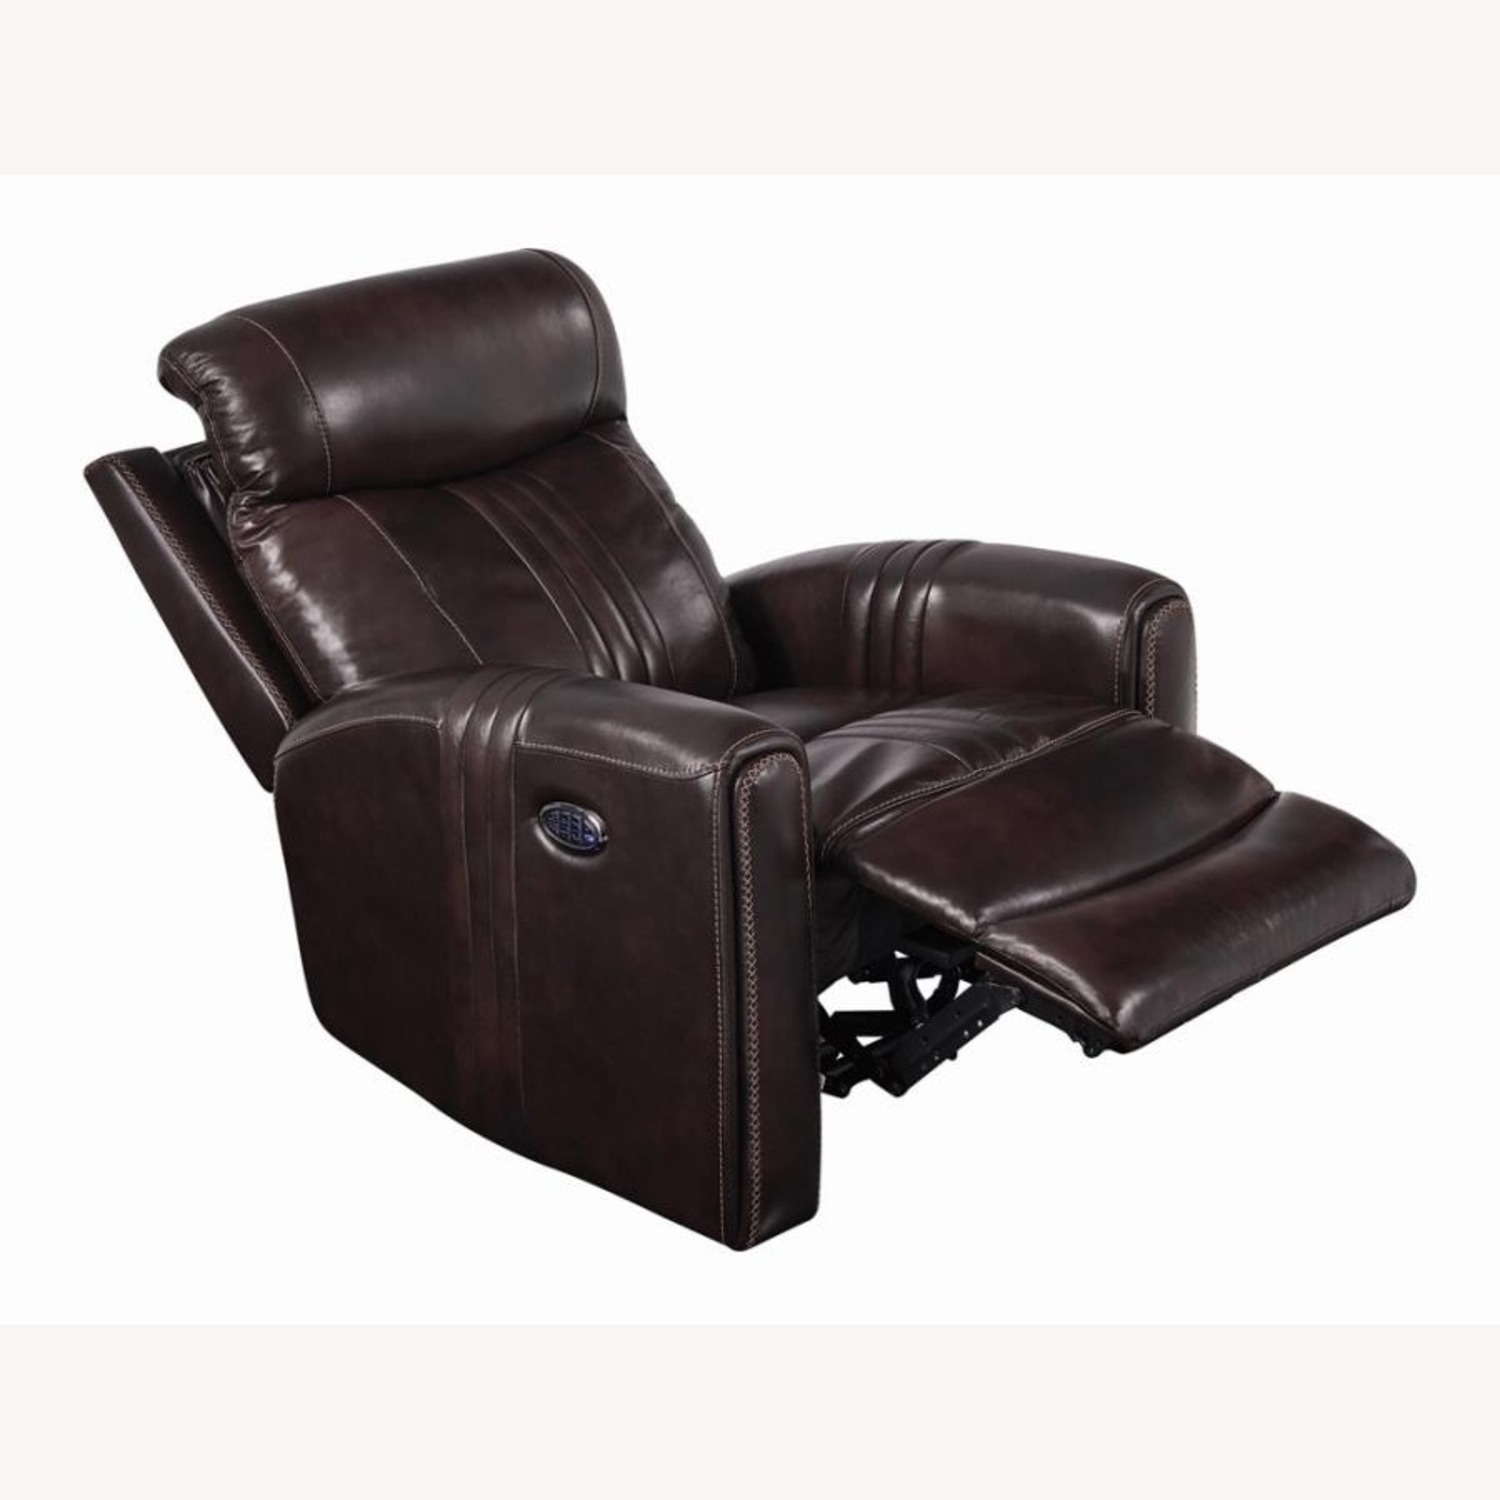 Modern Power Recliner In Brown Top Grain Leather - image-1